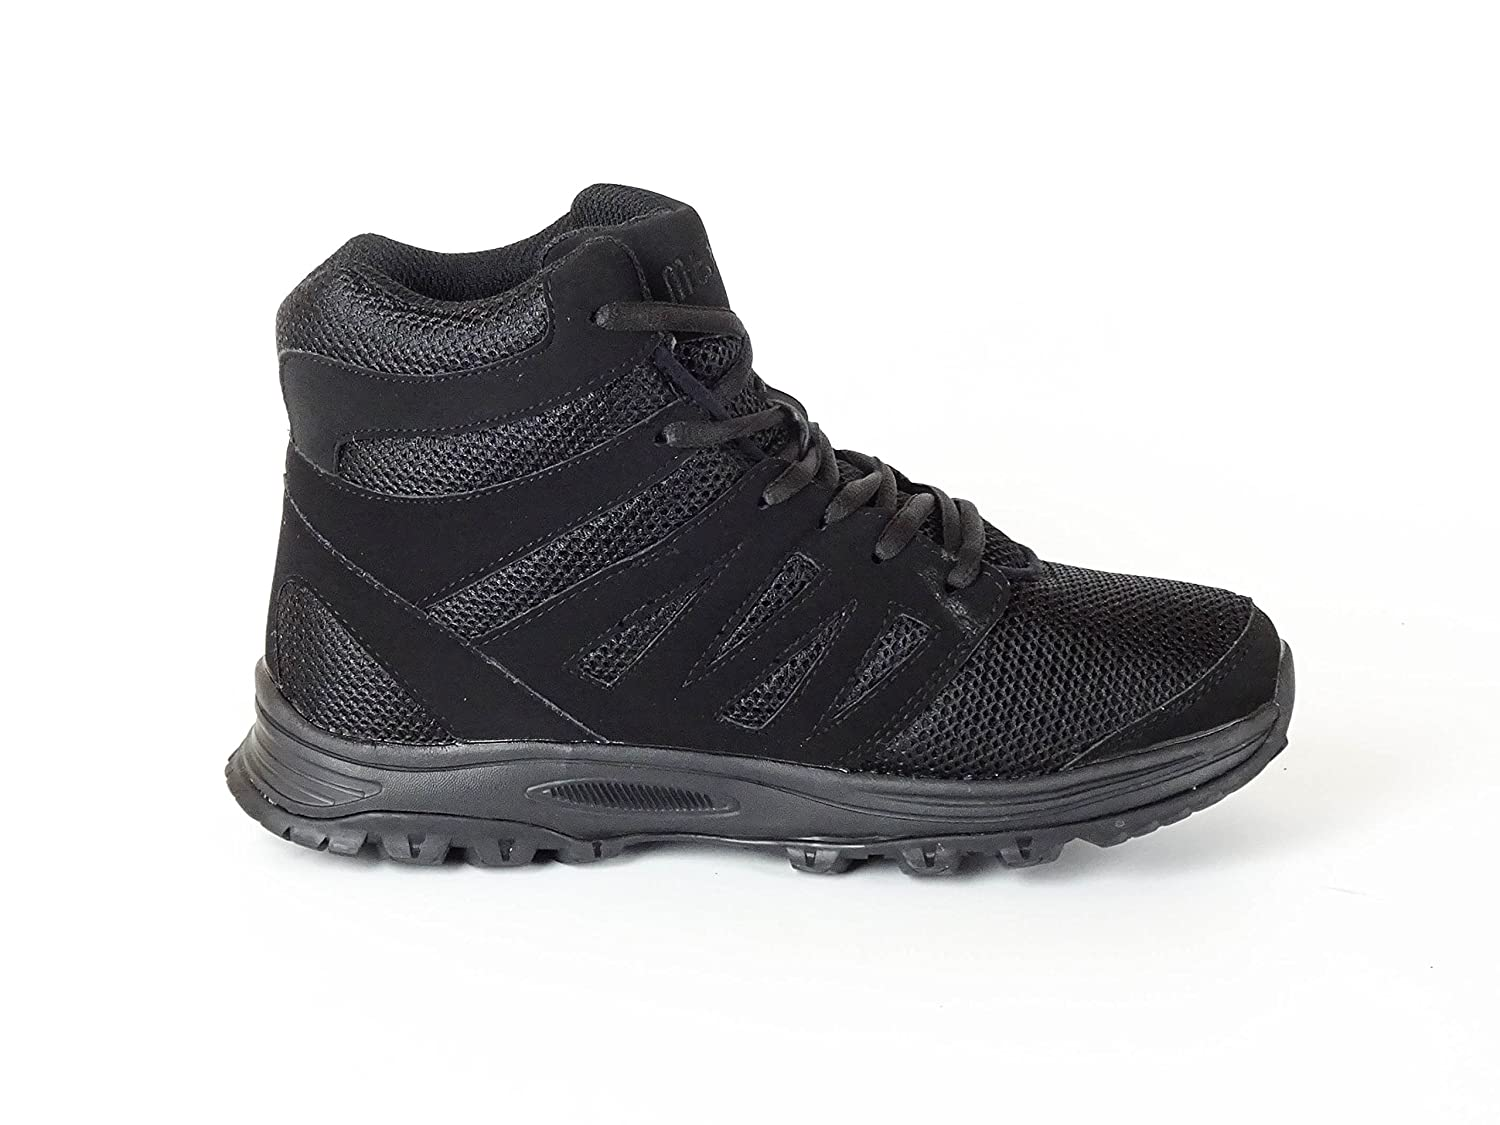 Mt. Emey 9315 Lady's High Athletic Comfort Walking Lace High Lady's Top Shoes B074WLLRG7 11 5E (US) afb92e